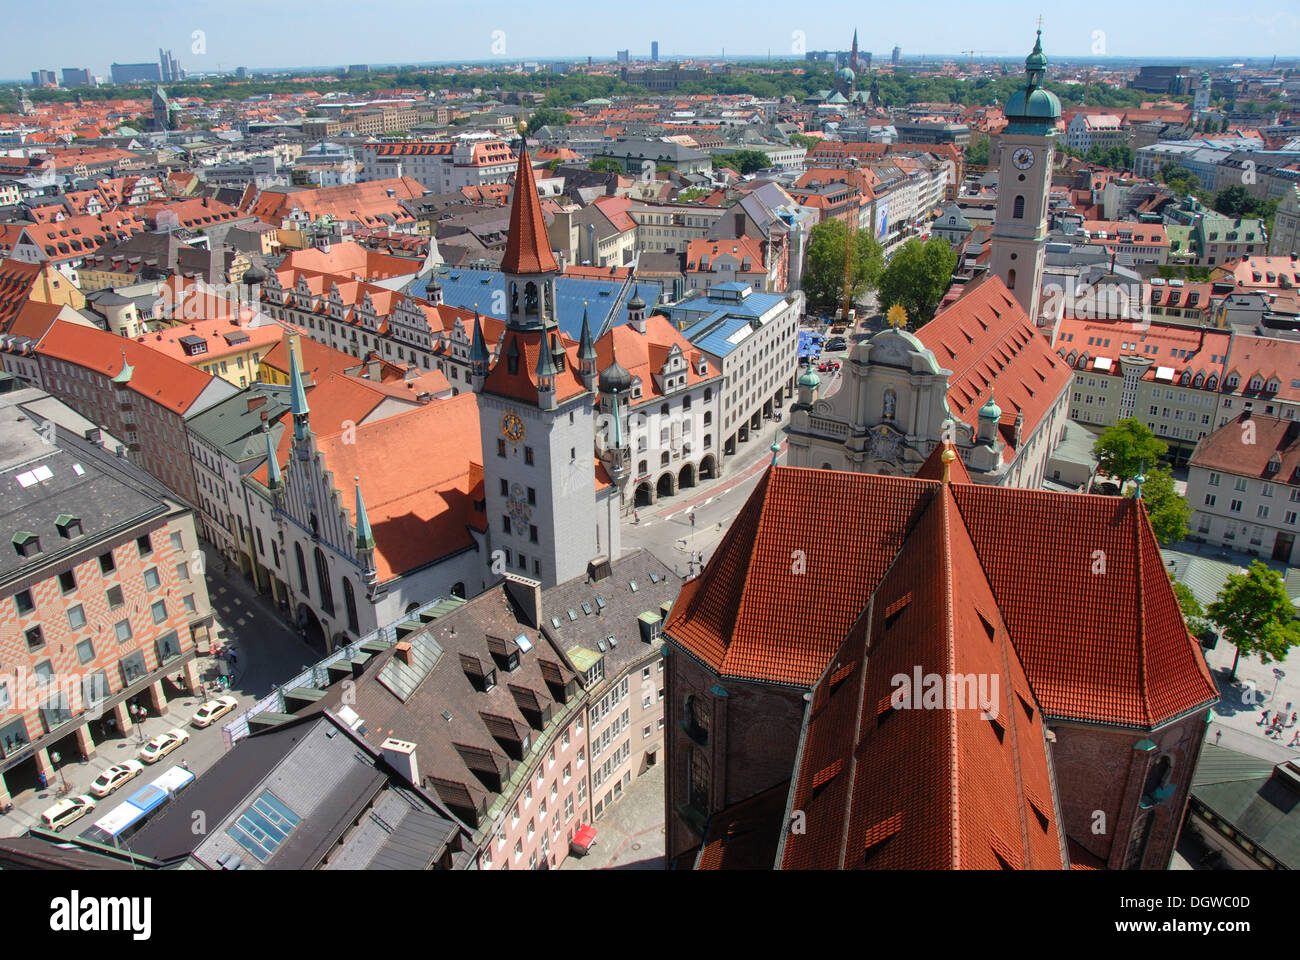 View from the 'Alter Peter' tower, St. Peter, of rooftops, city centre, Old Town Hall, Talburgtor Gate, - Stock Image